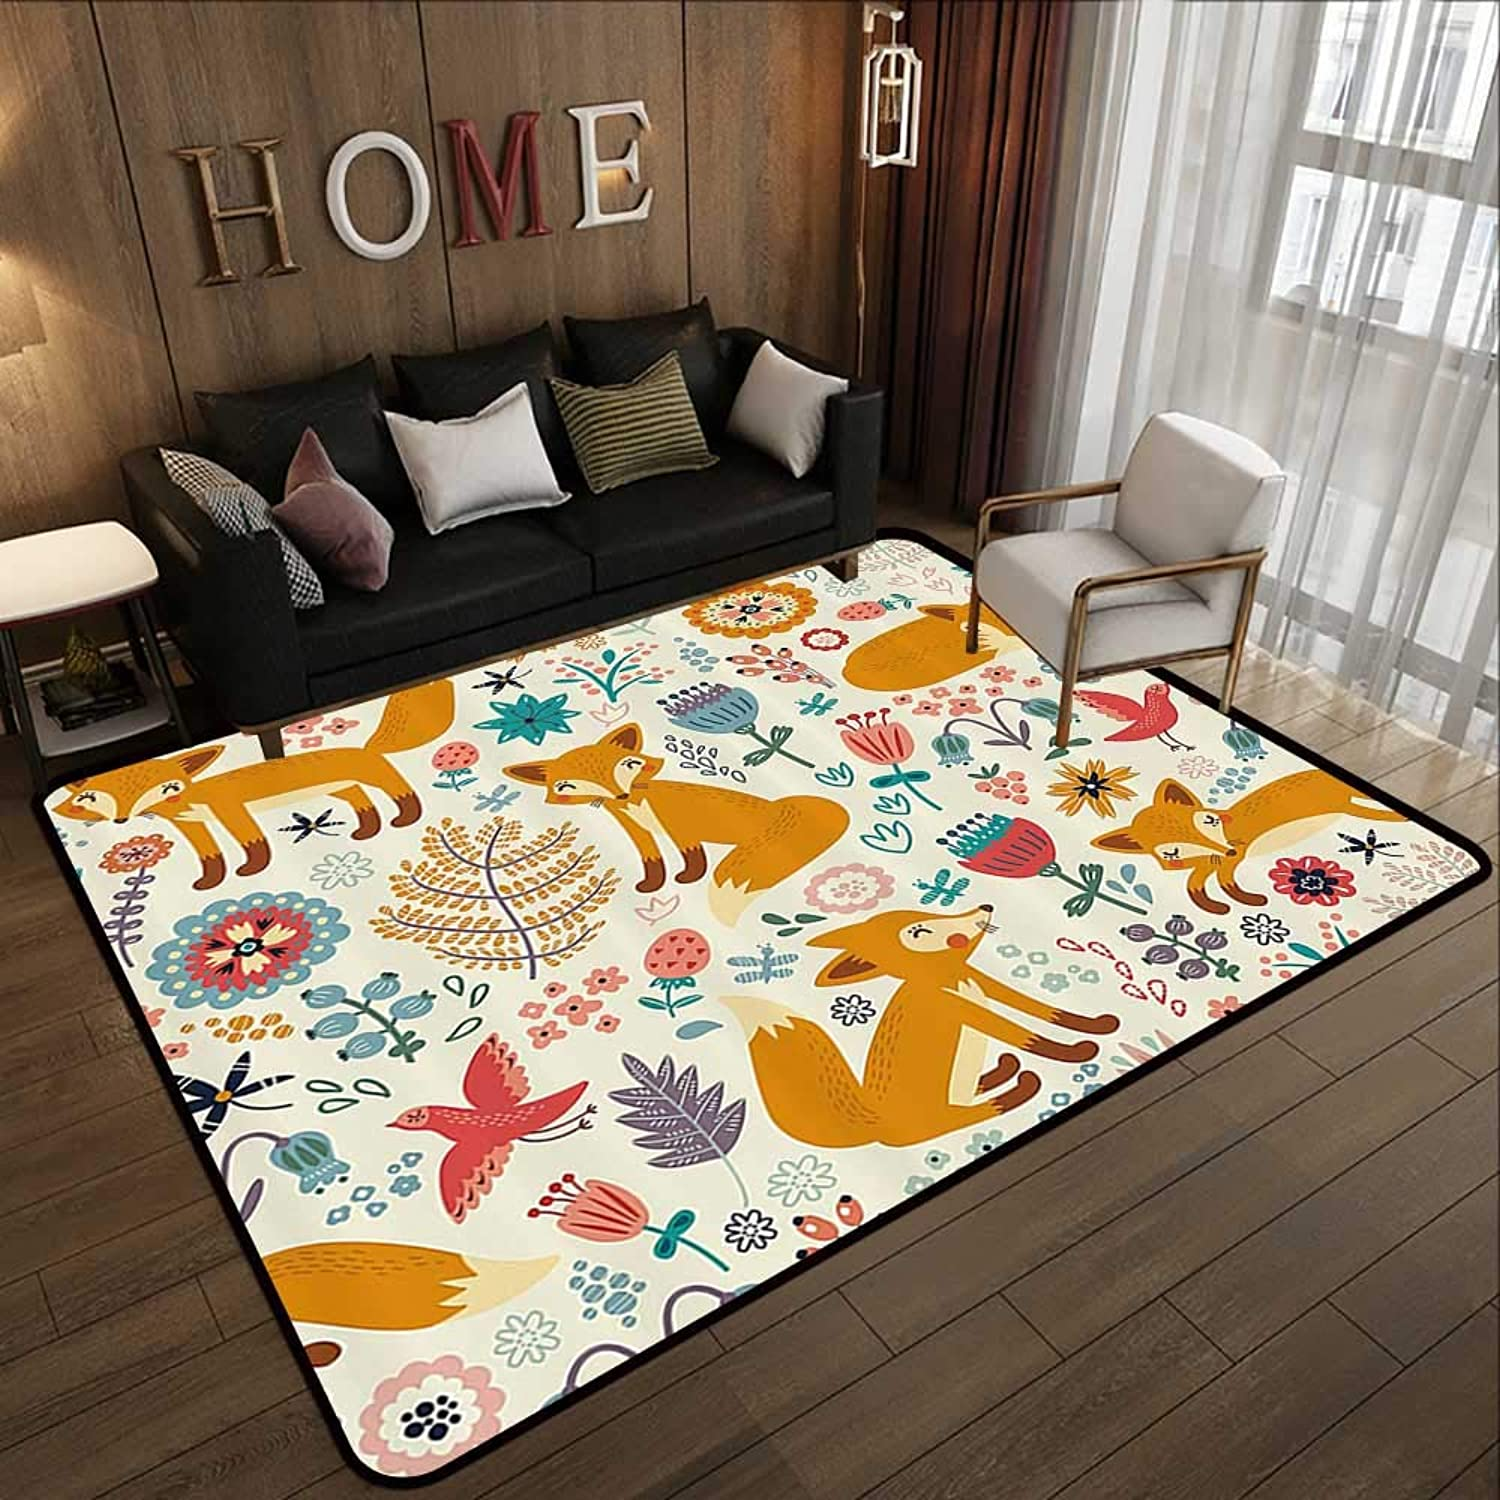 Floor mat,Fox,Natural Wildlife Composition with Cute Foxes Ornate Flowers Flying Birds Kids Nursery,Multicolor 47 x 59  Indoor Outdoor Rubber Mat